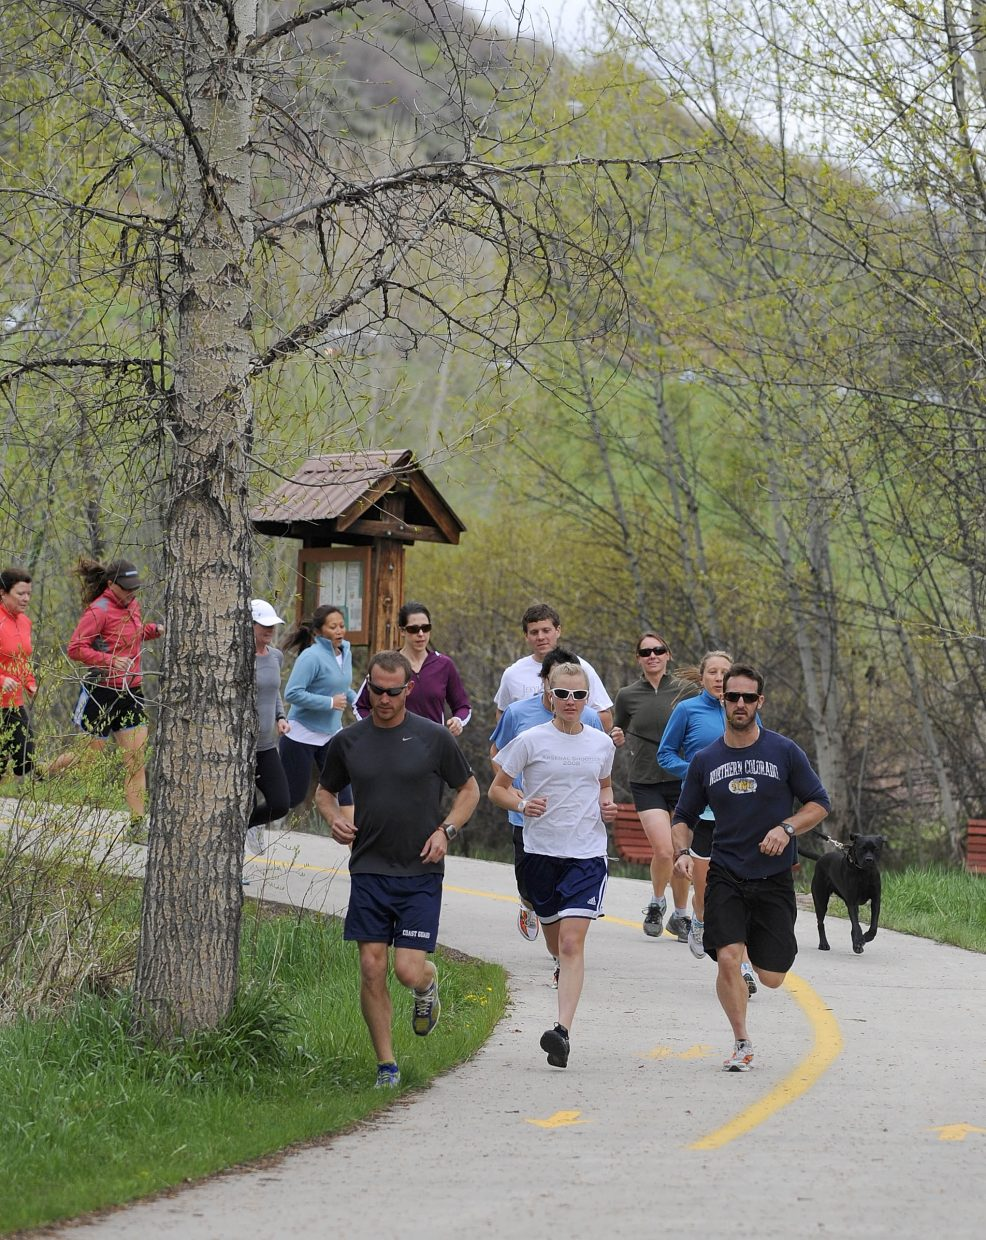 Members of the Old Town Hot Springs triathlon club practice their running.